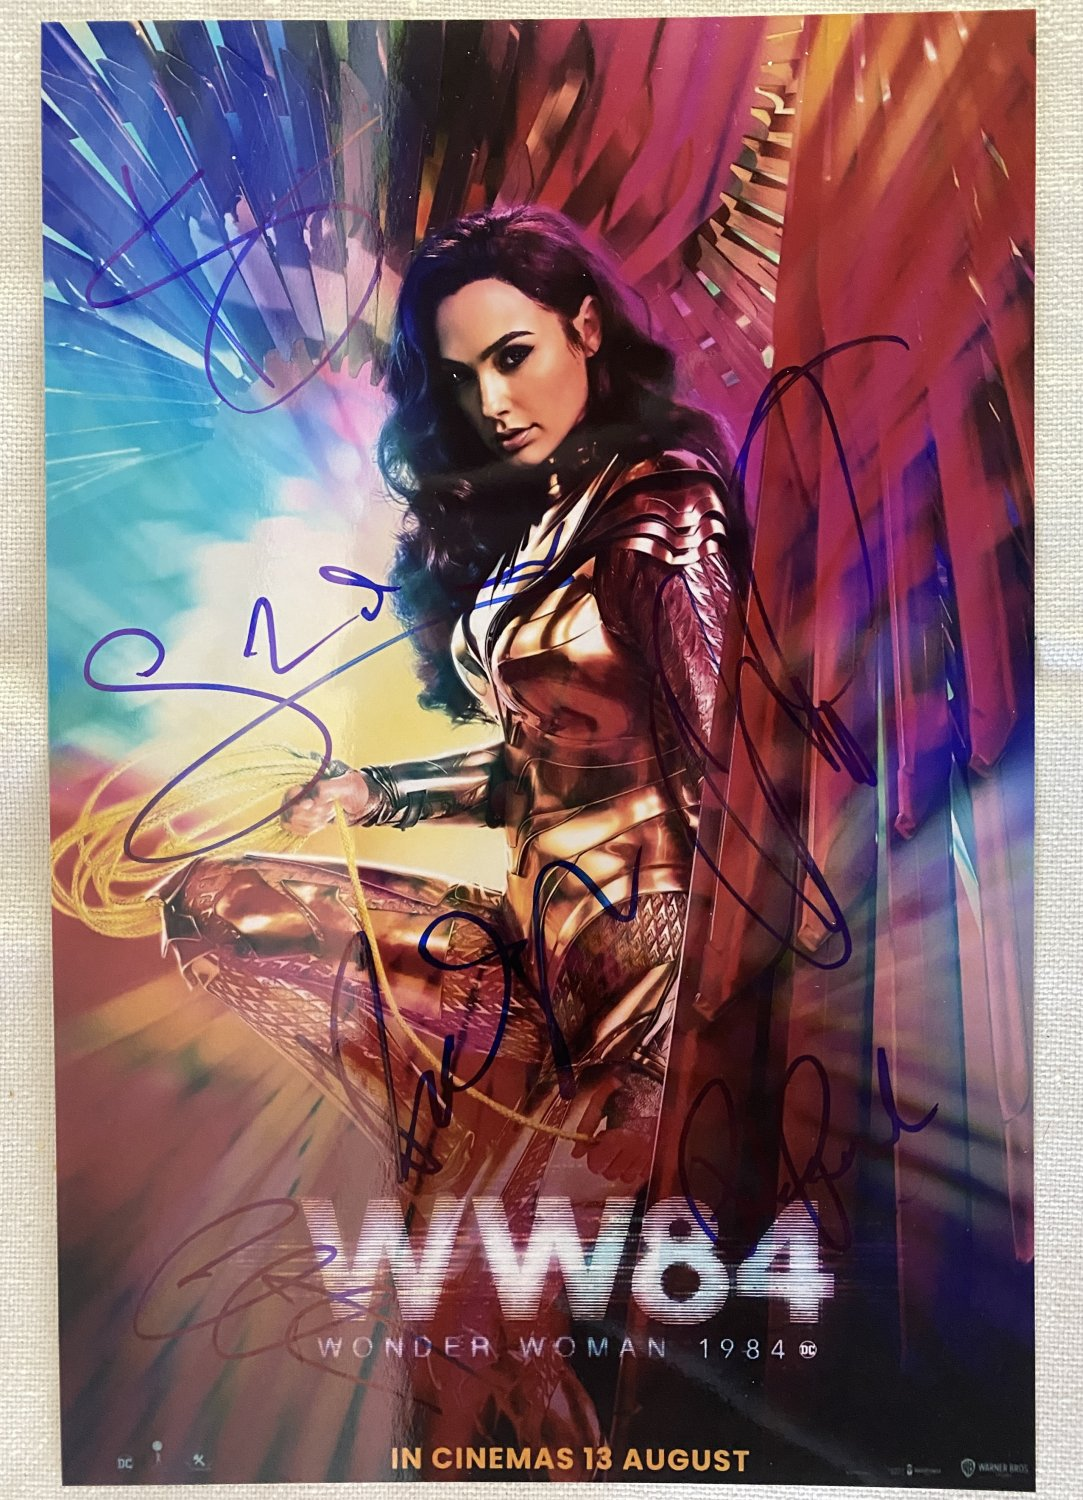 Wonder Woman 1984 cast signed autographed 8x12 photo Gal Gadot Chris Pine WW84